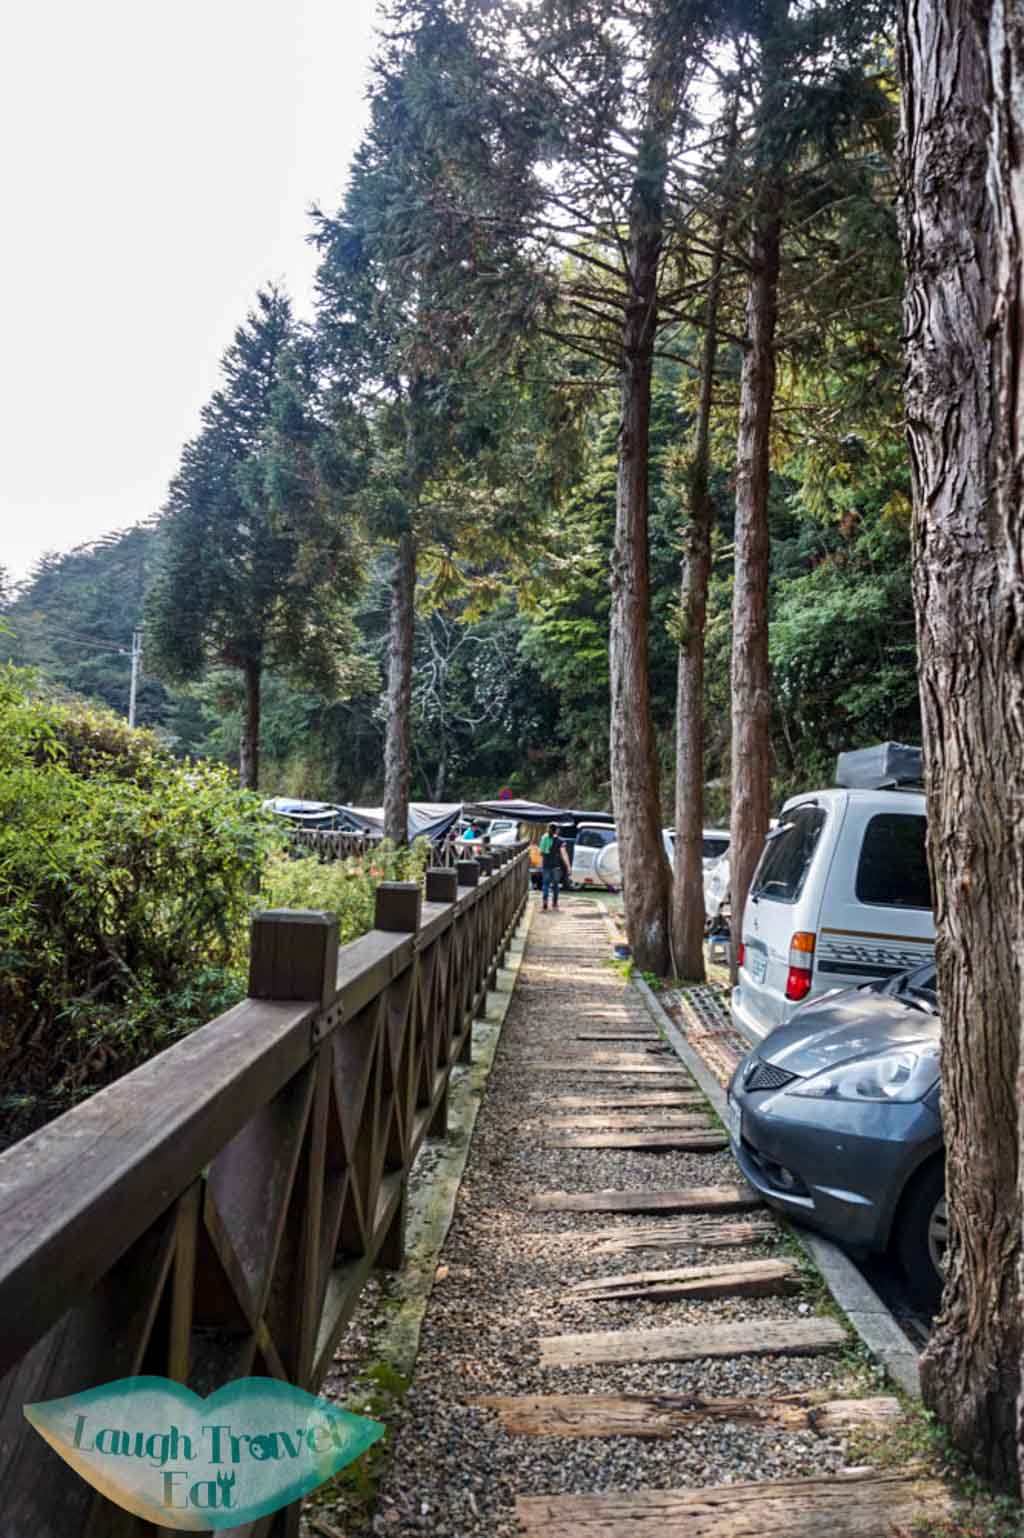 Parking spaces available near 27K mark along Dasyueshan Trail in Taichung - Laugh Travel Eat